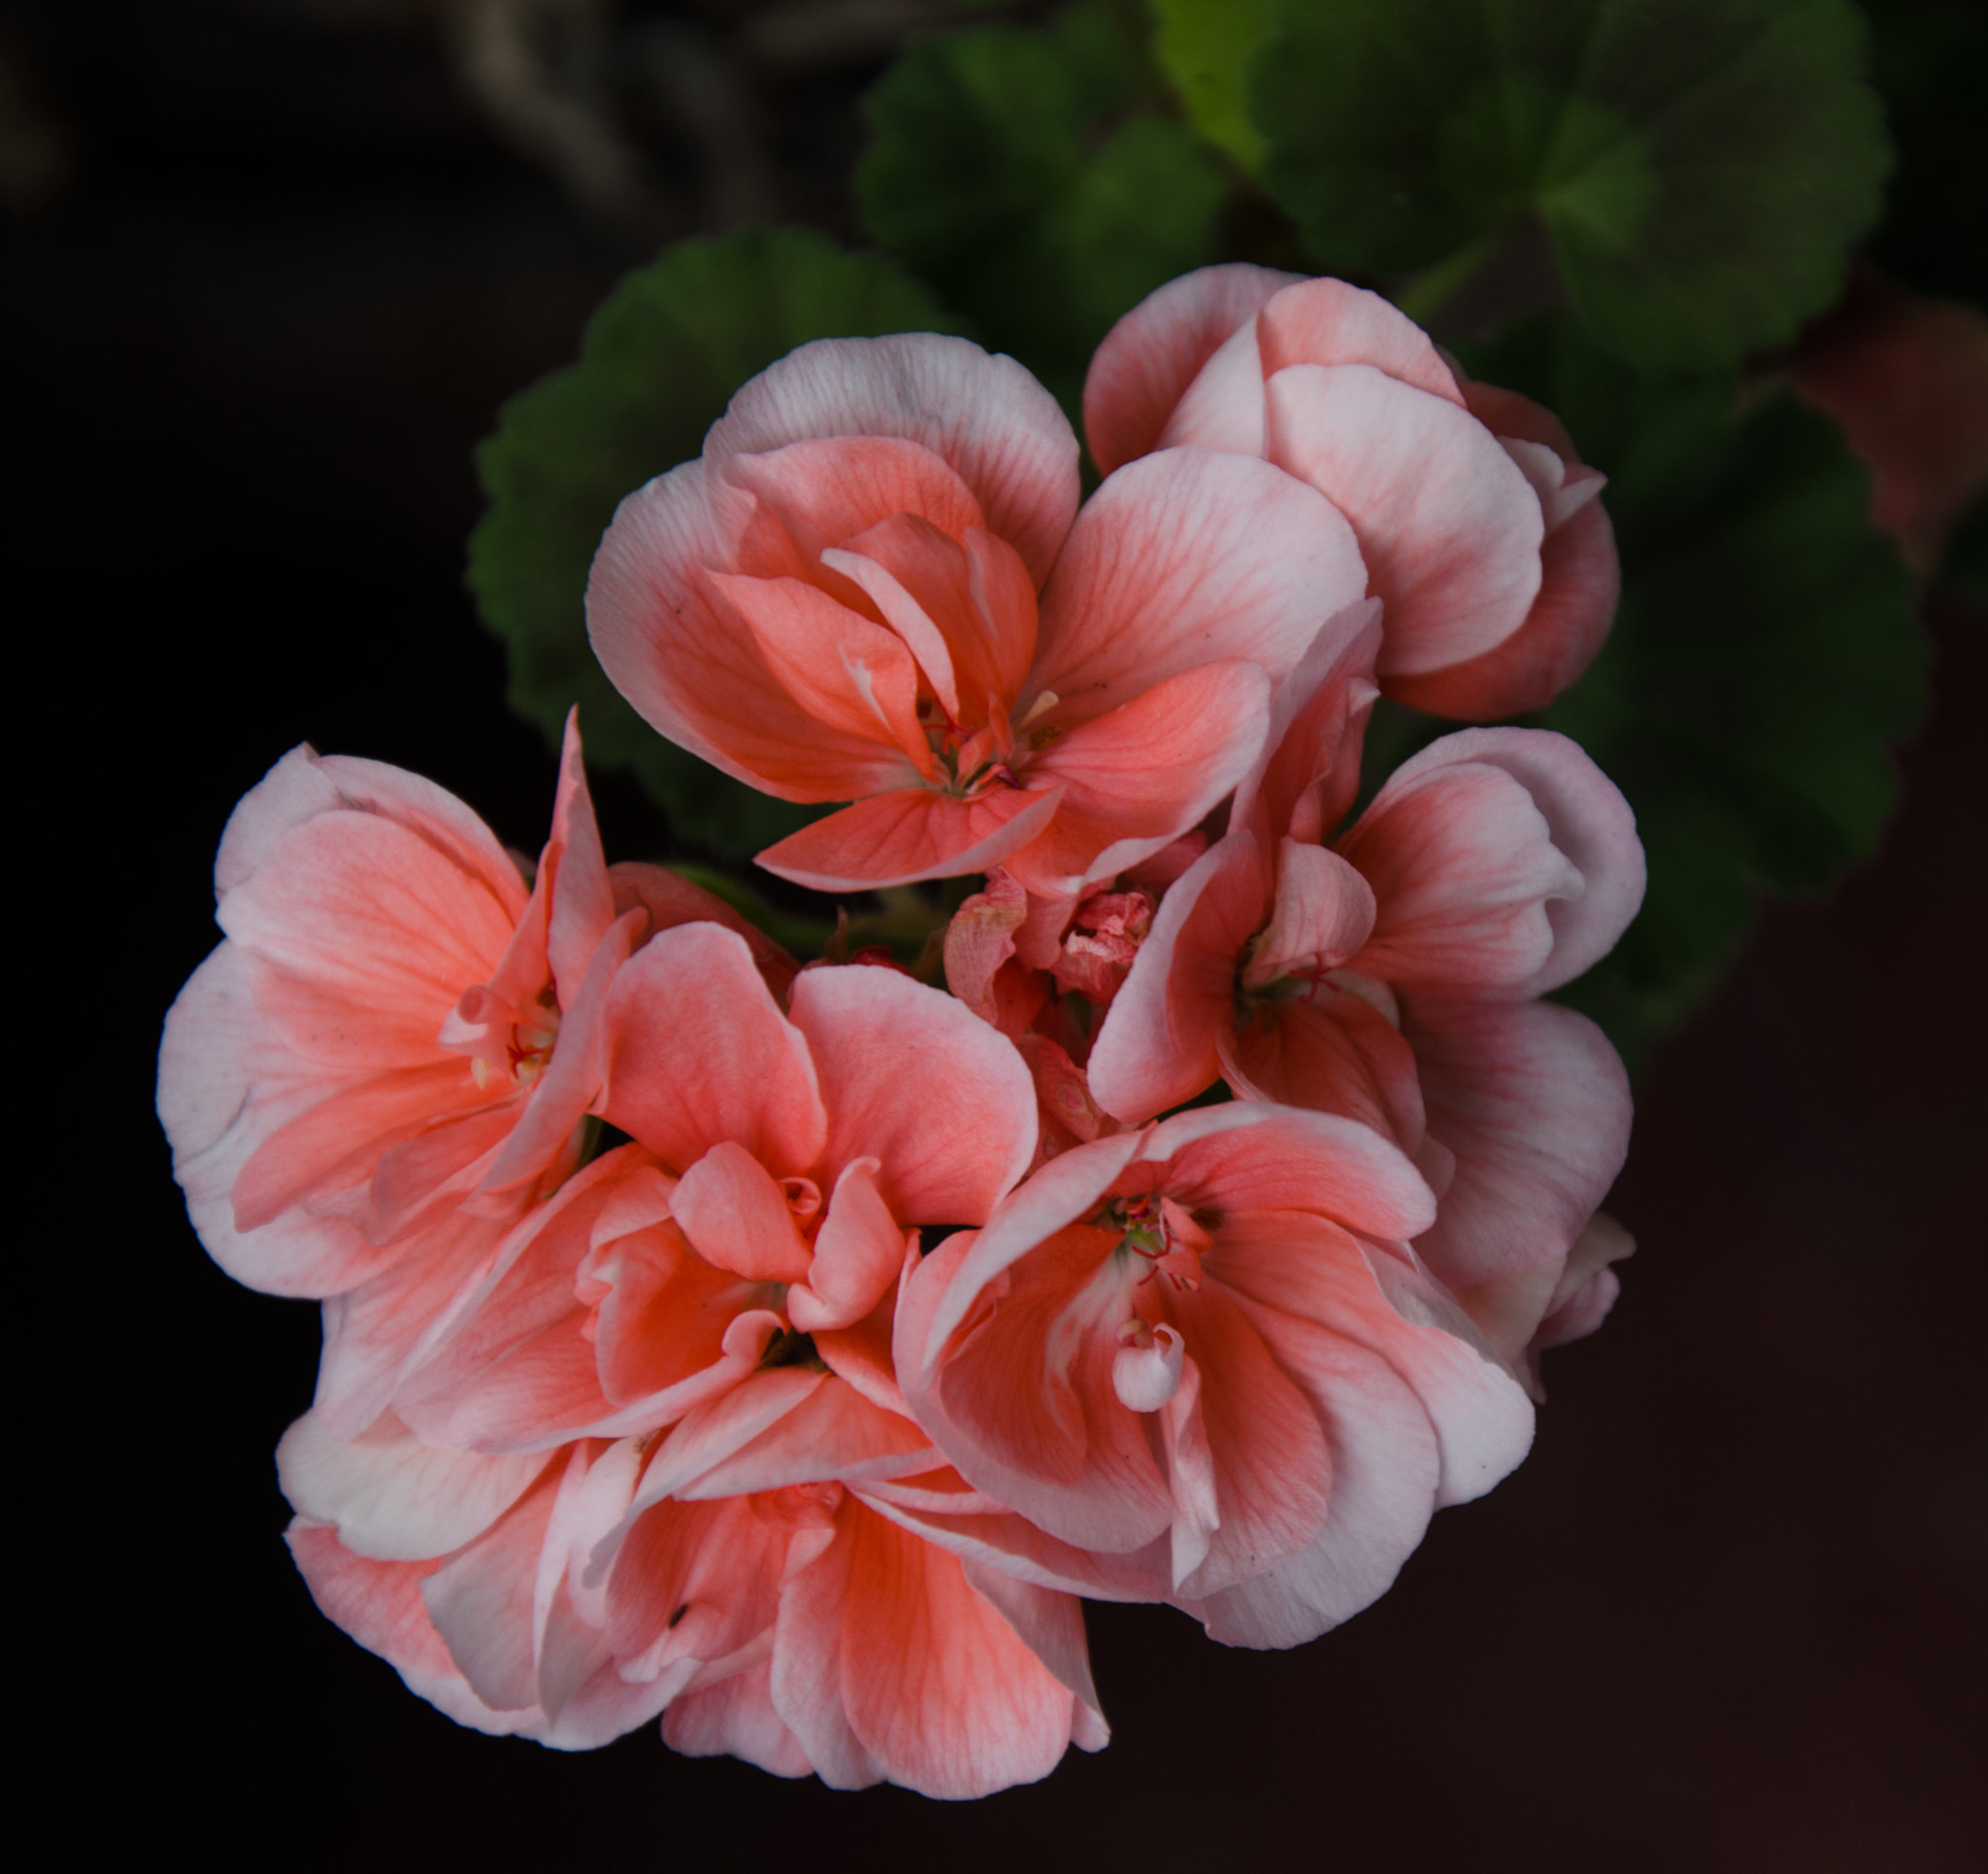 Photograph Geranium 2 by Brian Sanders on 500px